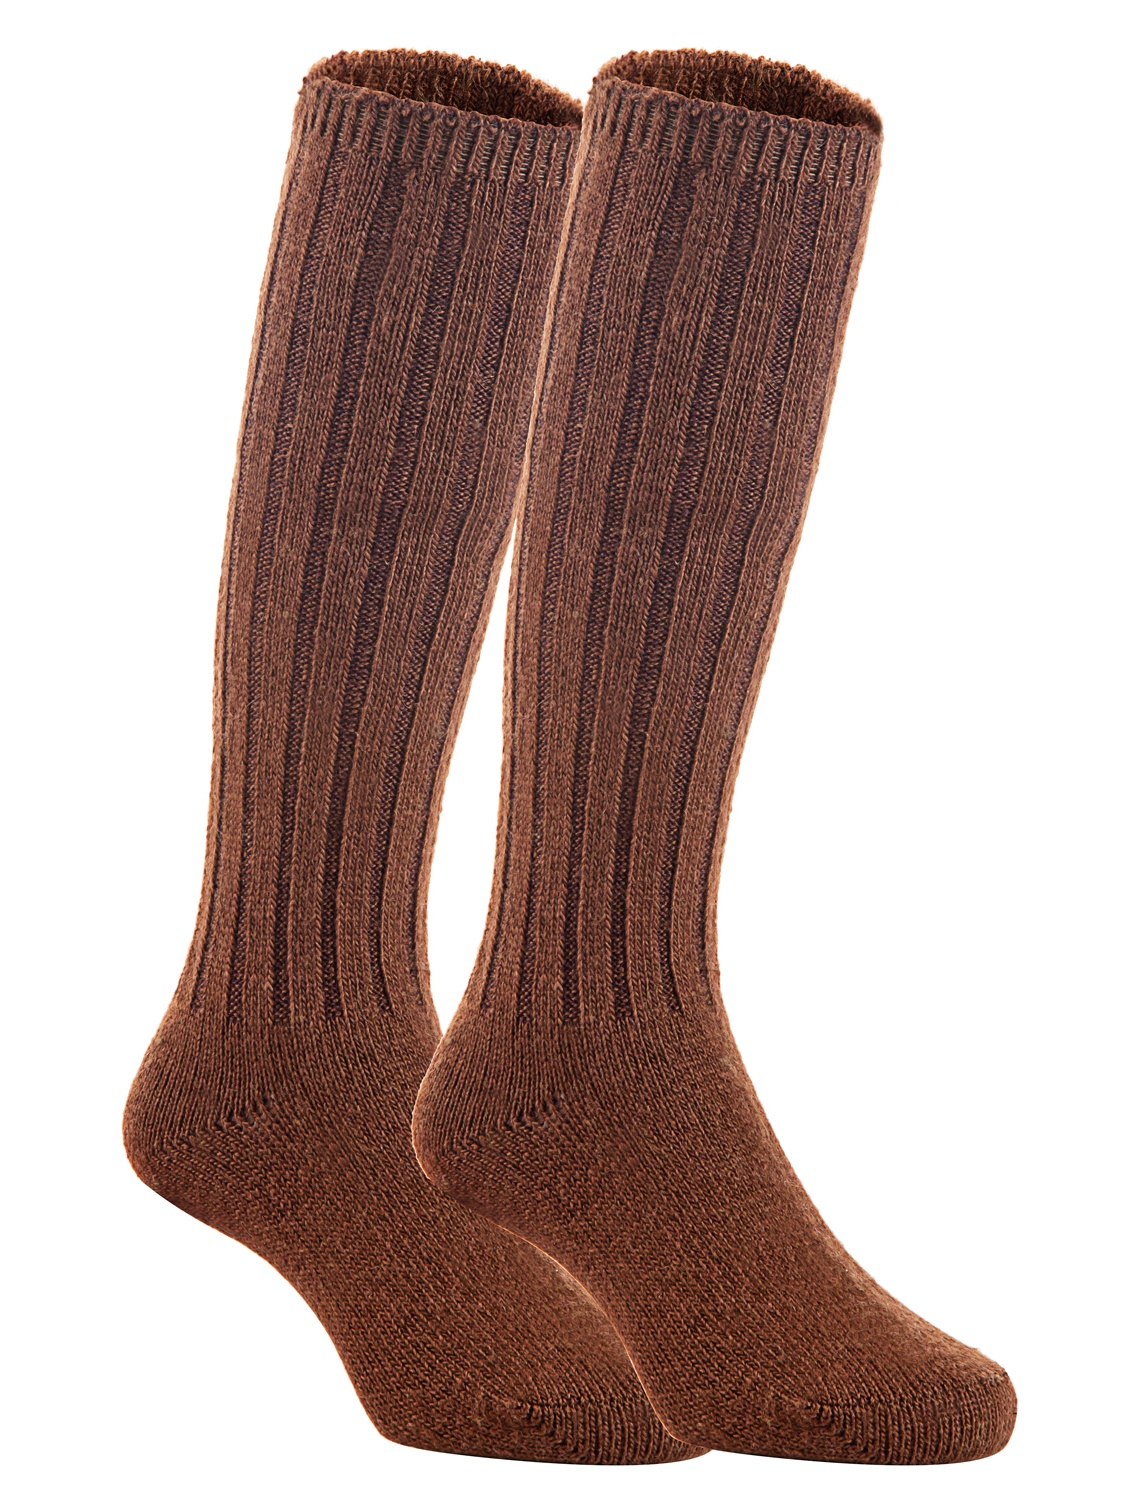 Lian LifeStyle Unisex Baby Children 3 Pairs  Knee High Wool Blend Boot Socks Size 4-6Y  (Coffee)